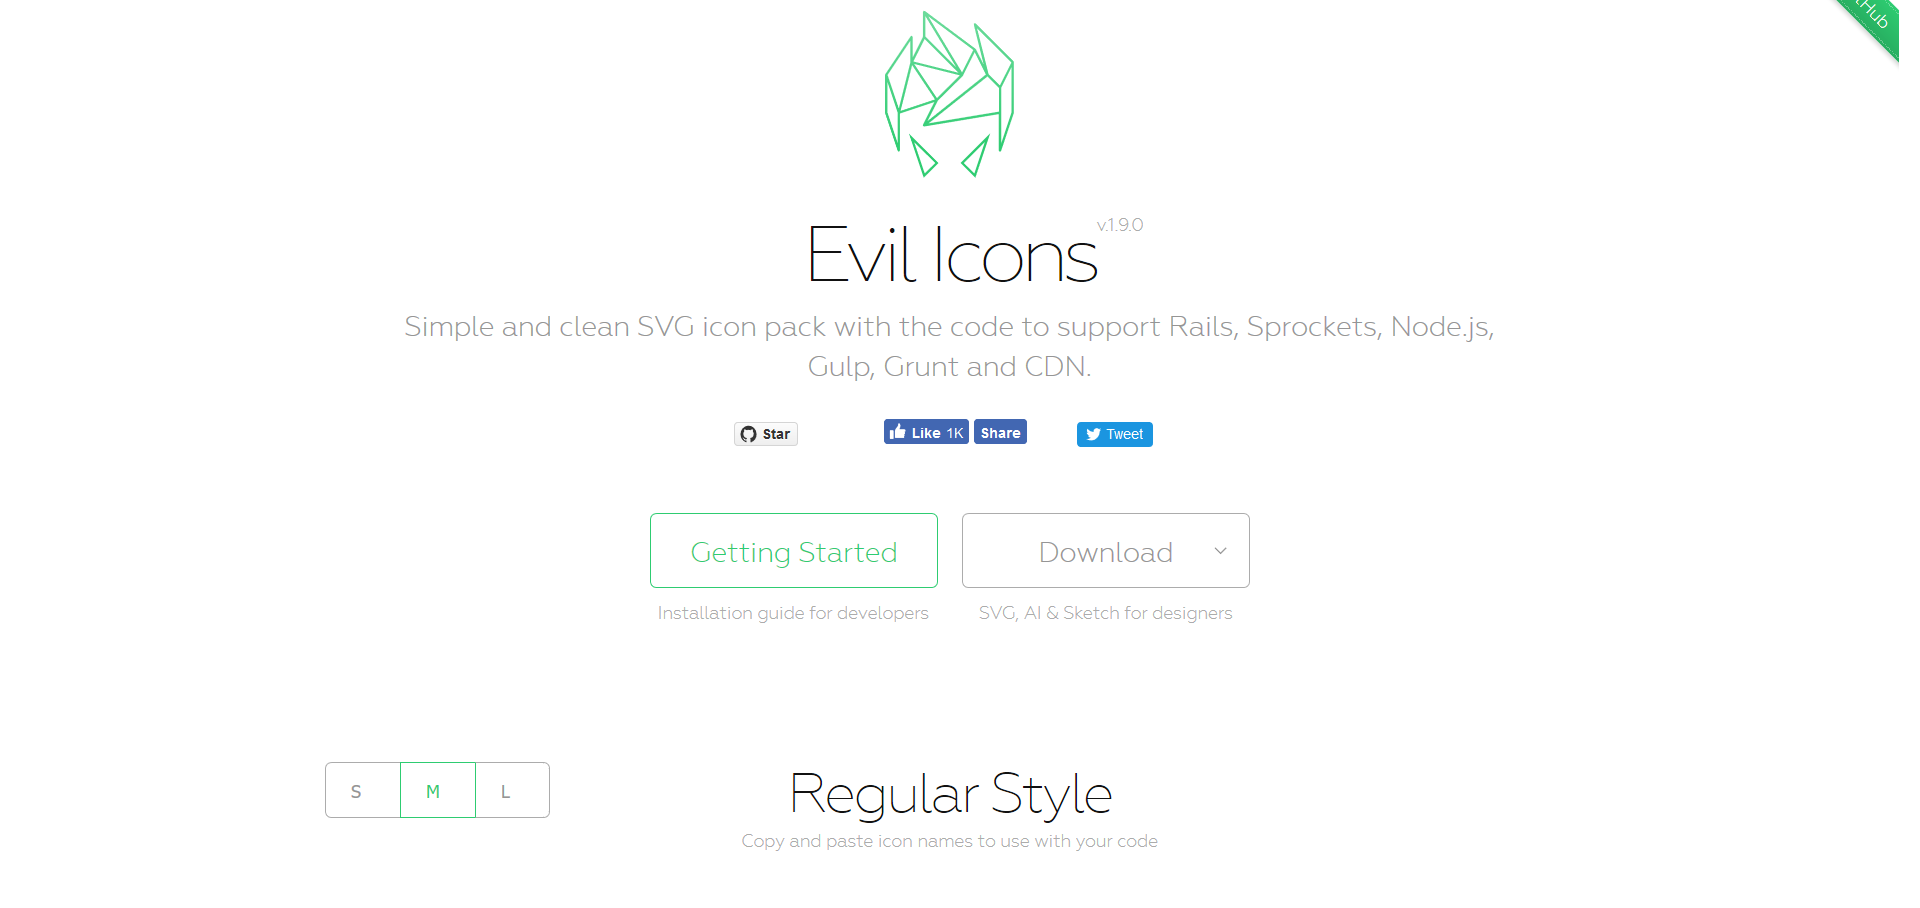 Evil Icons – simple and clean SVG icon pack